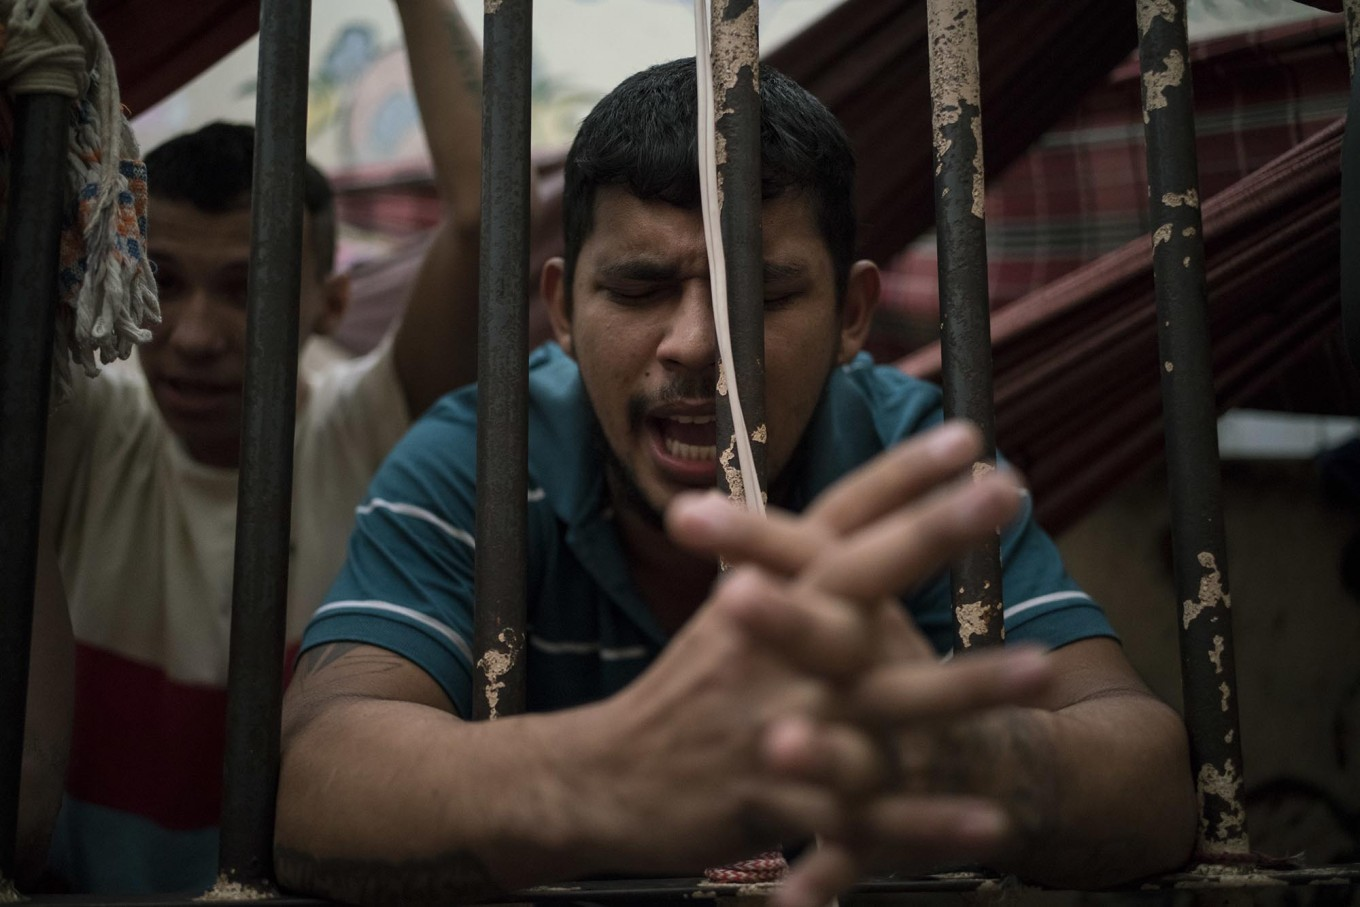 In this Feb. 6, 2017 photo, a detainee prays inside an overcrowded cell at a police station near Manaus, Brazil. All 24 detainees being held in this space made for eight said they hoped to avoid being transferred to a bigger prison under gang rule. AP Photo/Felipe Dana